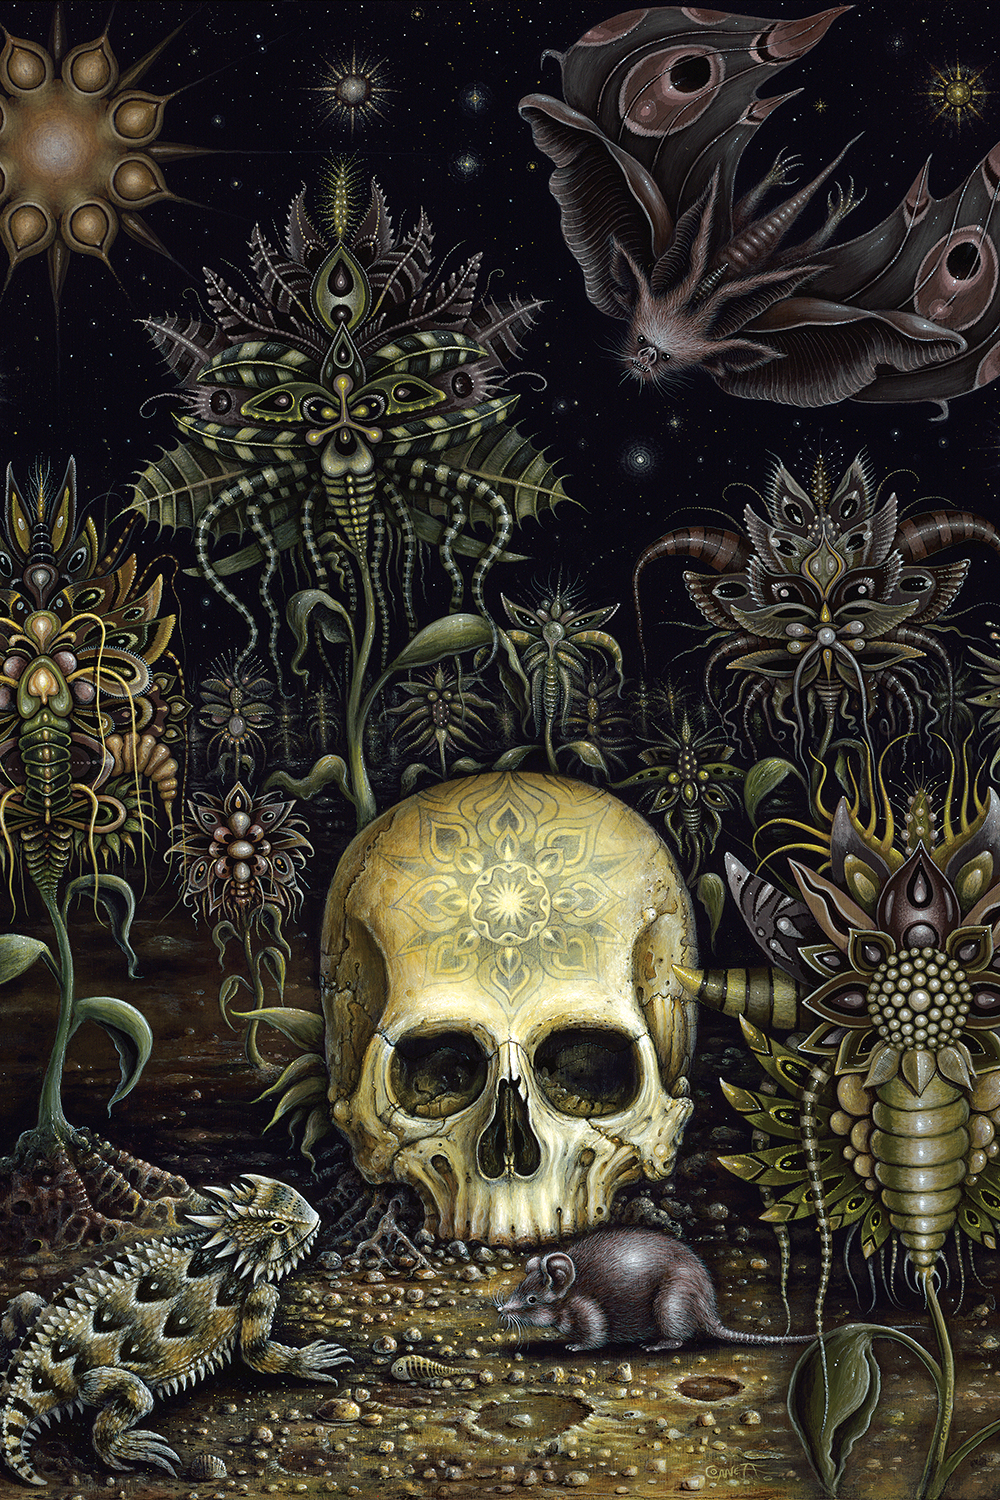 Skull with symmetrical pattern on front laying on the ground surrounded by an iguana, a rat, a bat, and ornate flowers